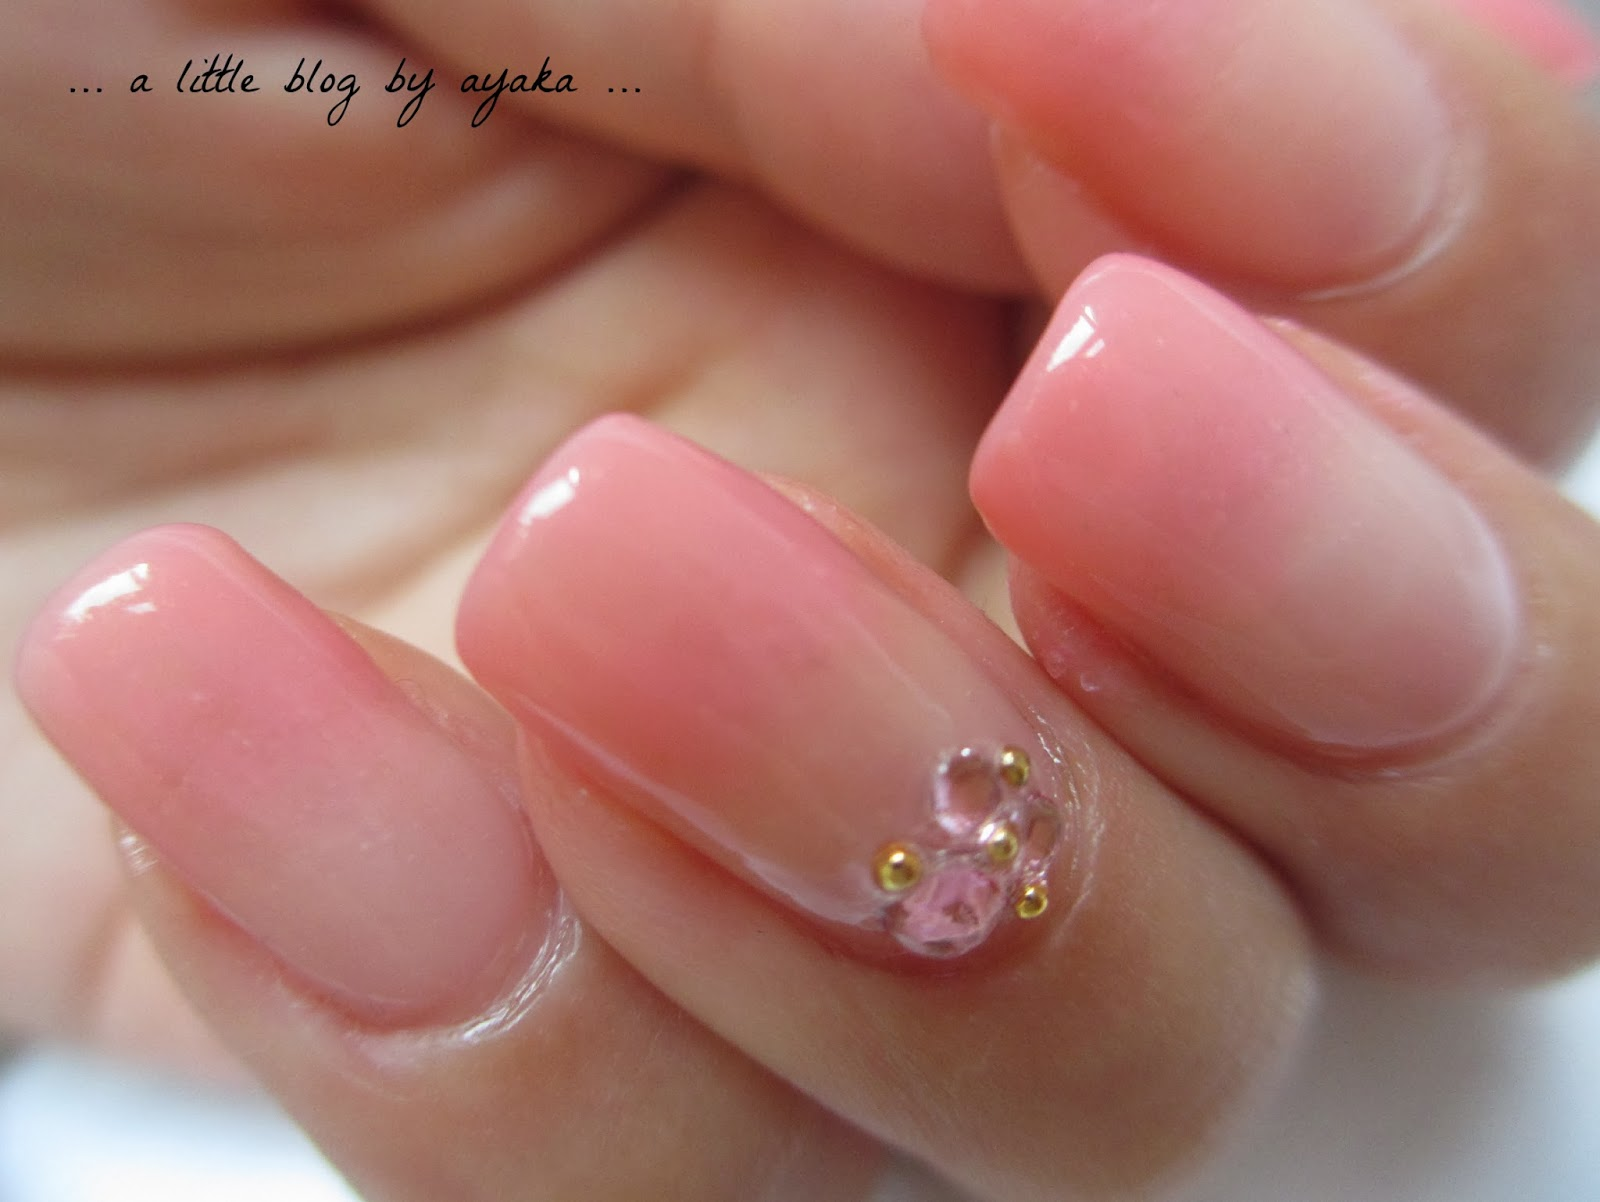 a little blog by ayaka ...: Squishy peachy ombre nails ♡